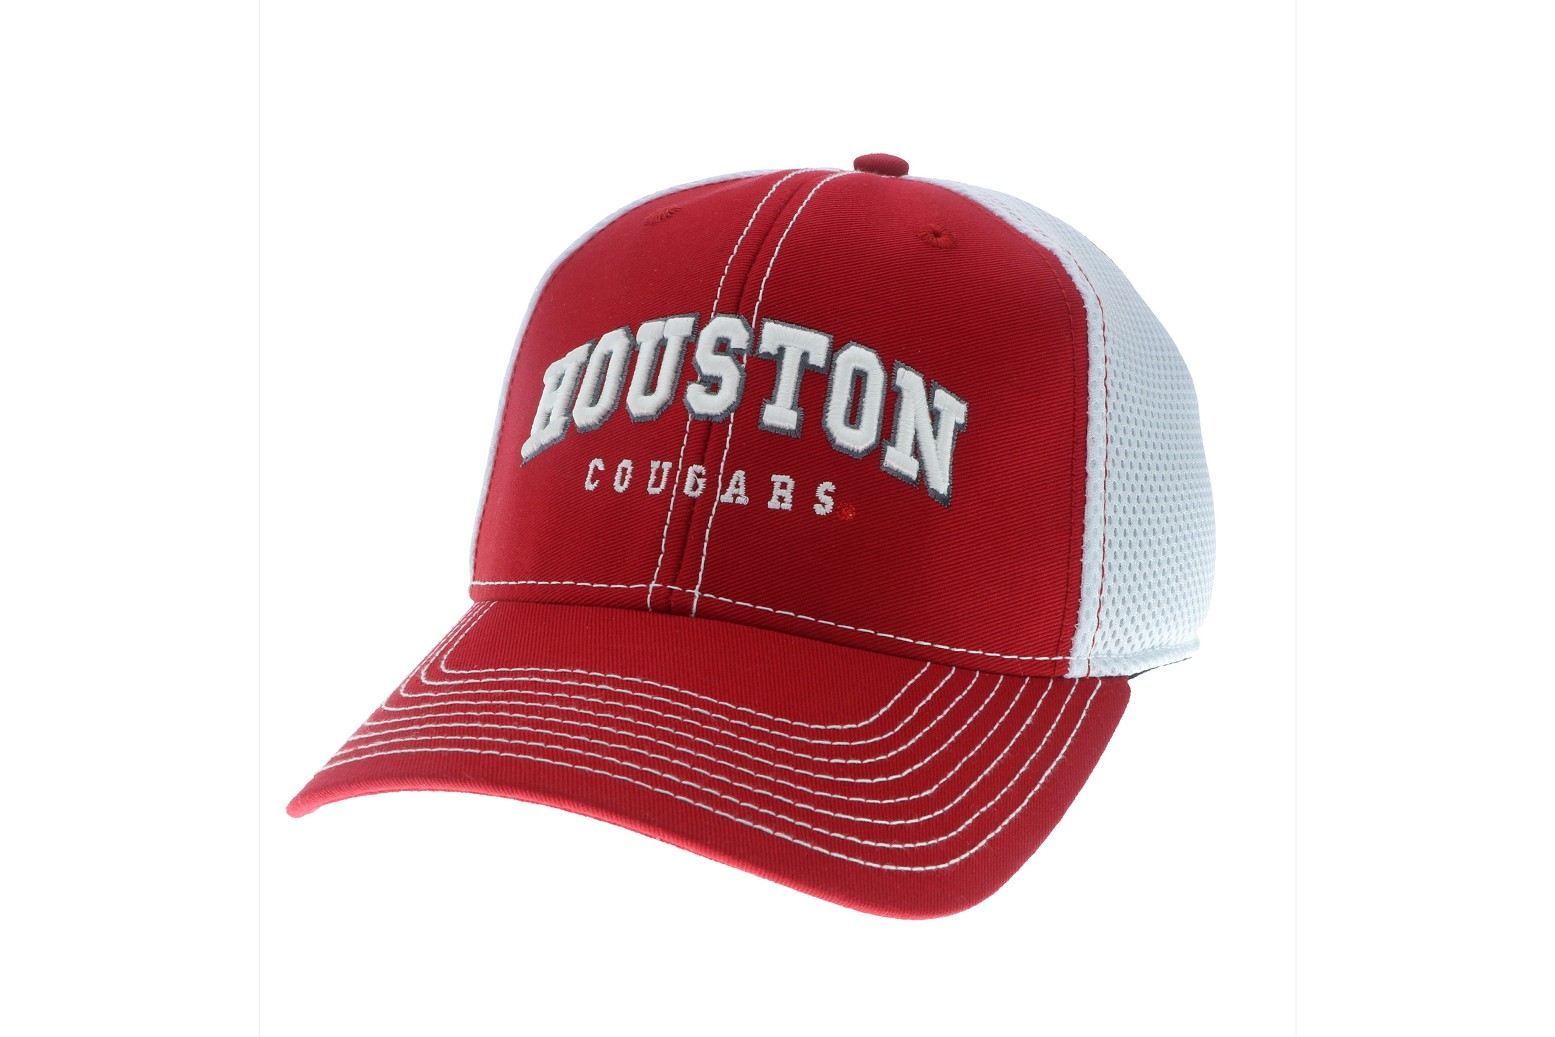 Houston Cougars Structured Cotton  Fit